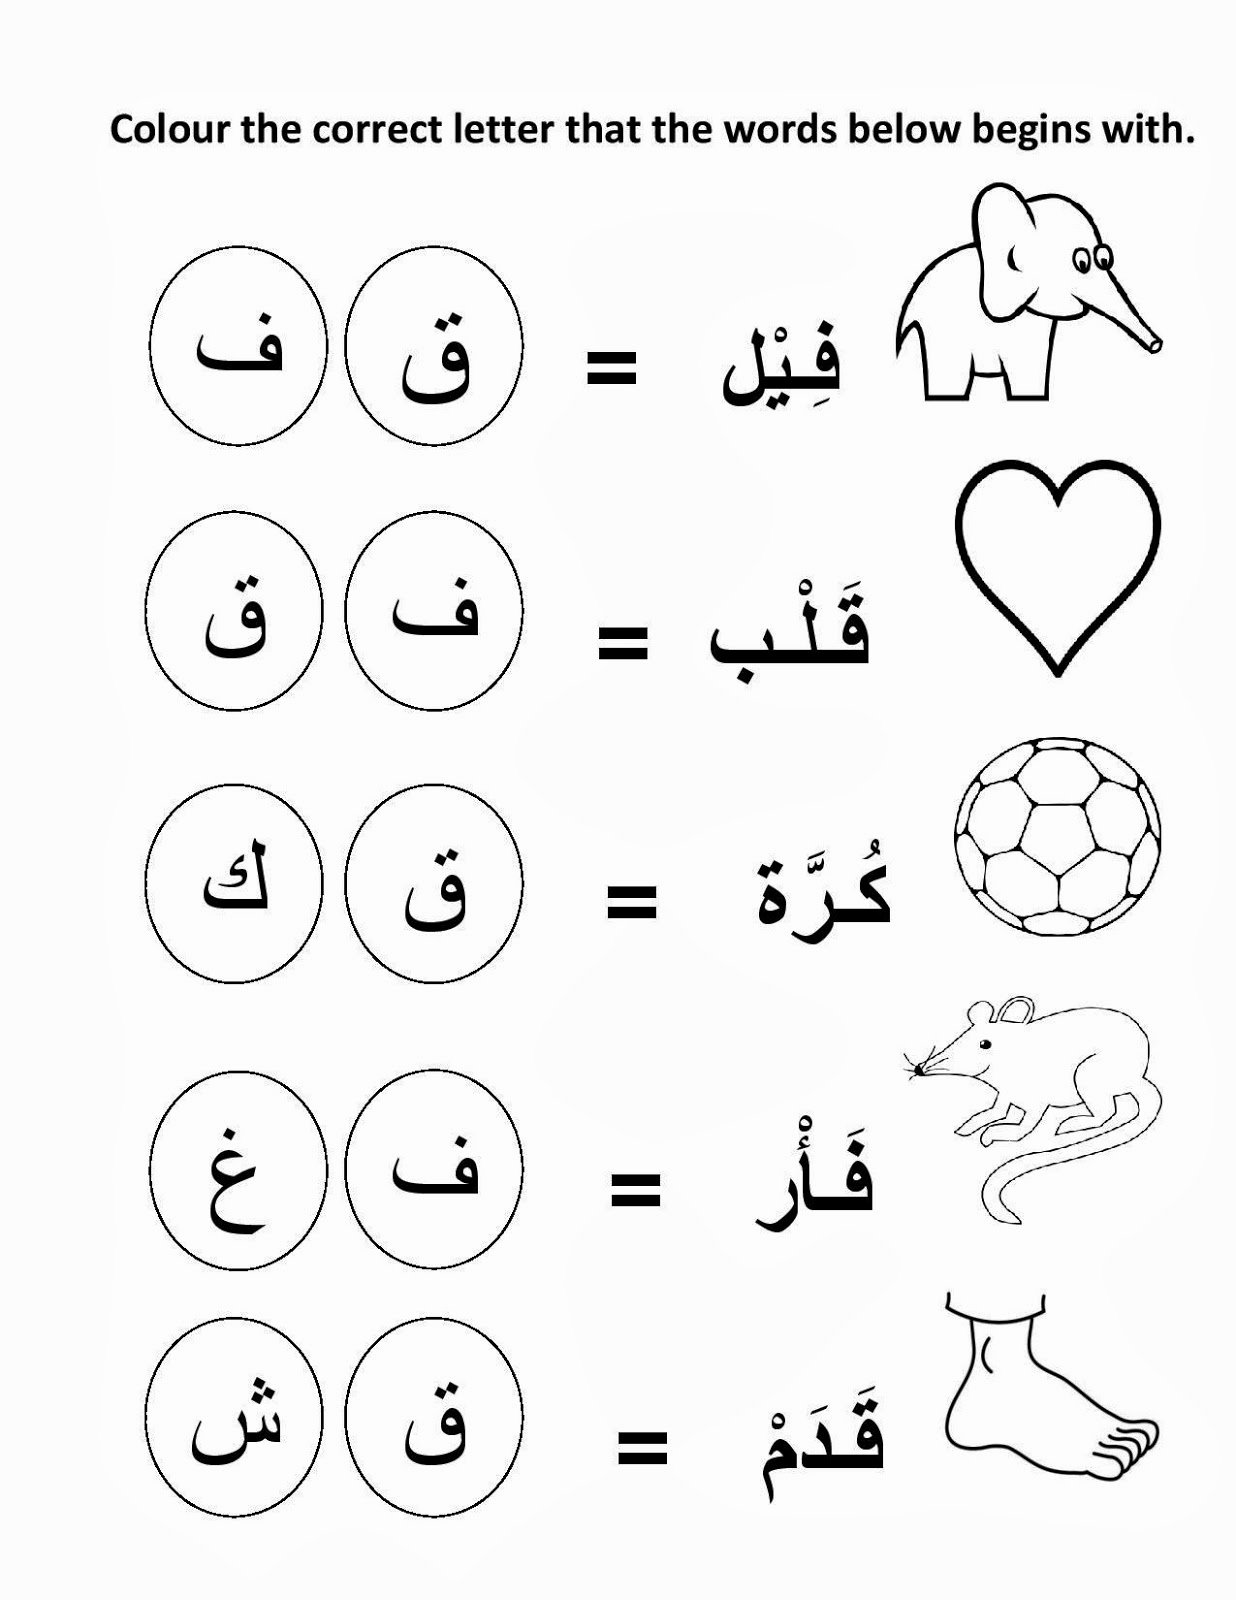 Arabic Alphabet Worksheets for Preschoolers Unique Worksheets Arabic Alphabet Letter Tracing Worksheets